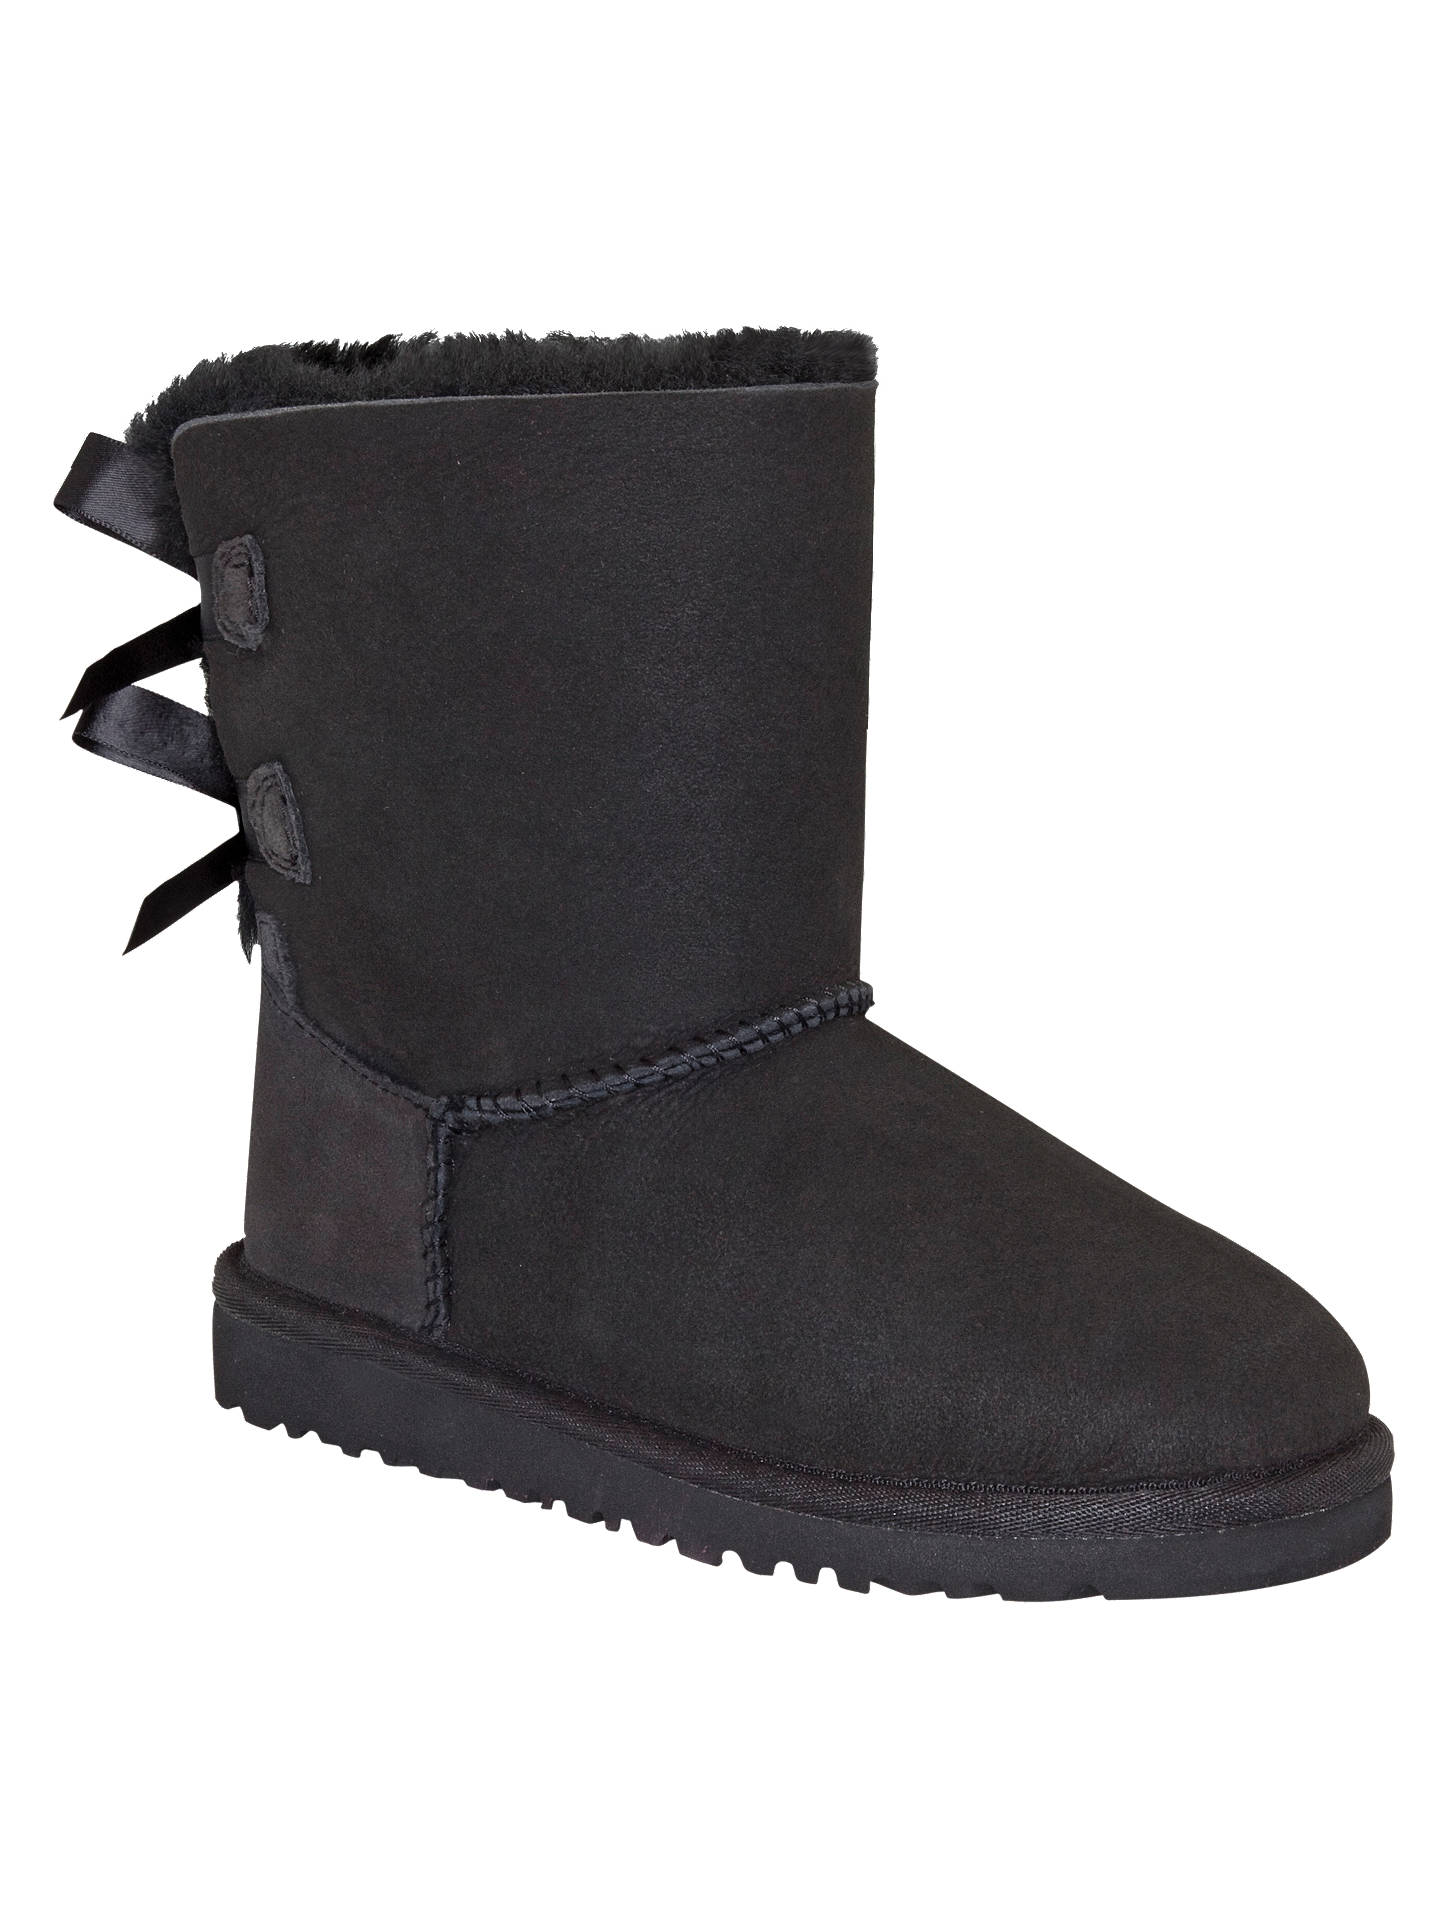 ugg children s bailey bow boots black at john lewis partners rh johnlewis com